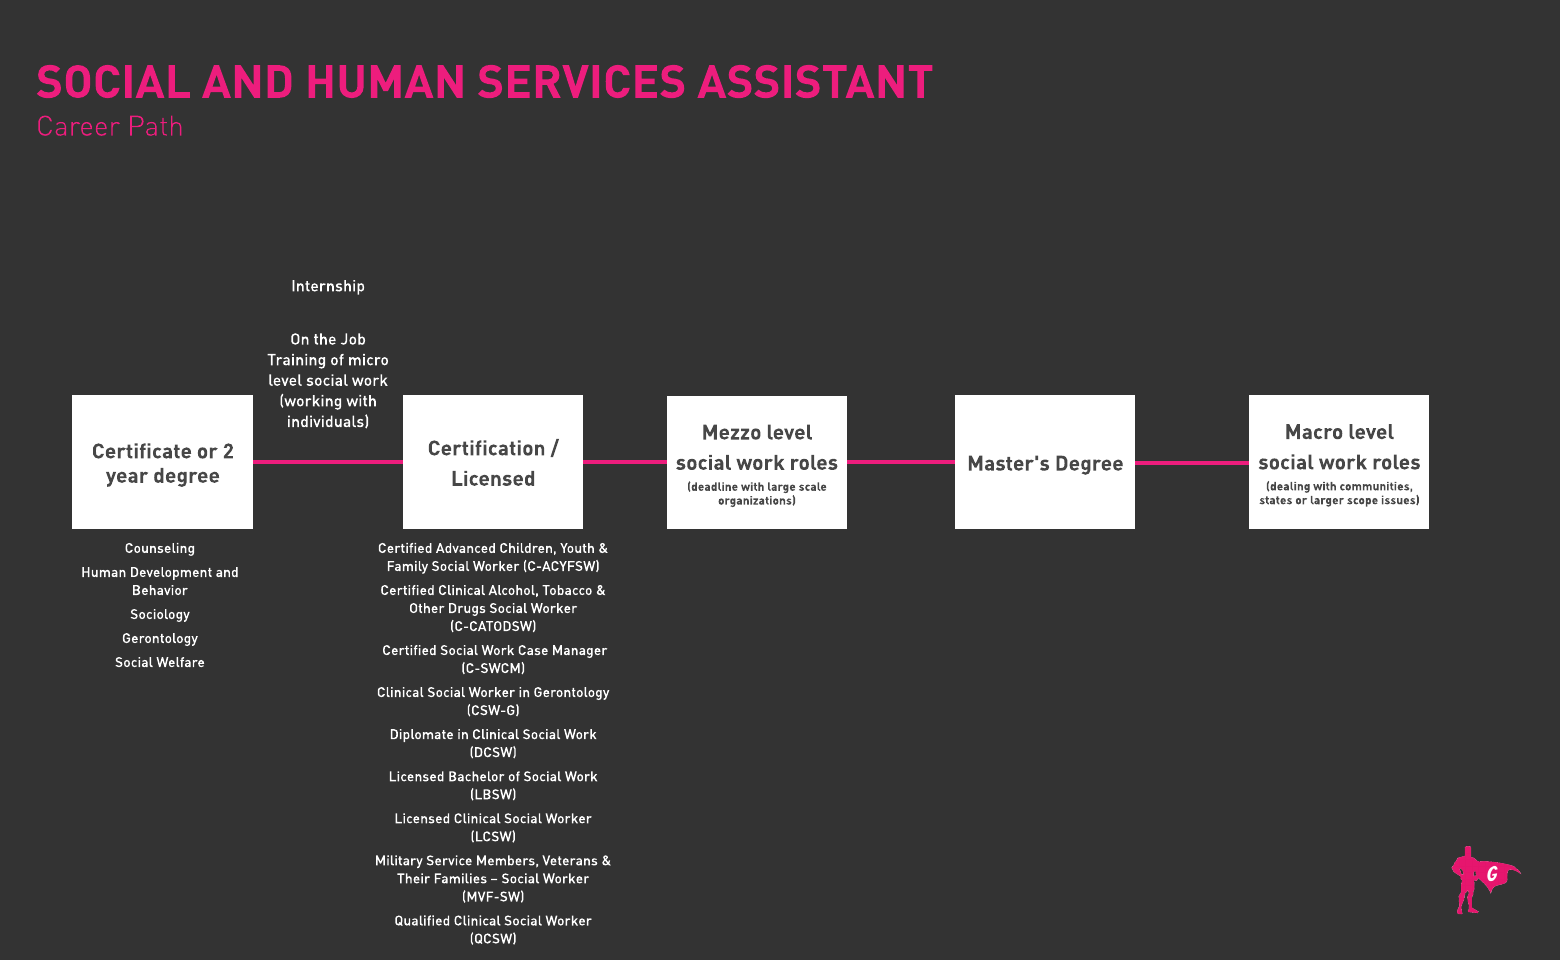 Social and Human Services Assistant Roadmap